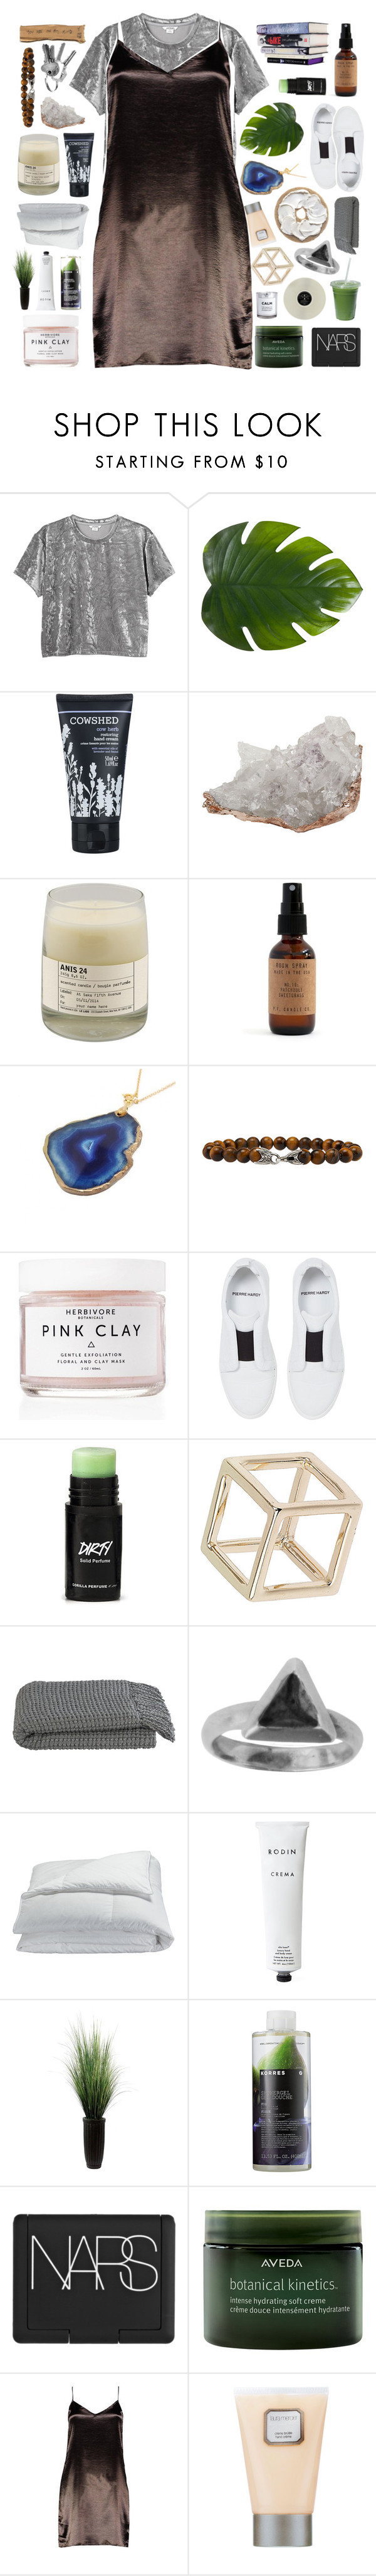 """""""check my nails"""" by deep-breaths ❤ liked on Polyvore featuring Monki, Zara Home, Cowshed, Anna New York, Le Labo, Costa, David Yurman, Herbivore, Pierre Hardy and Topshop"""